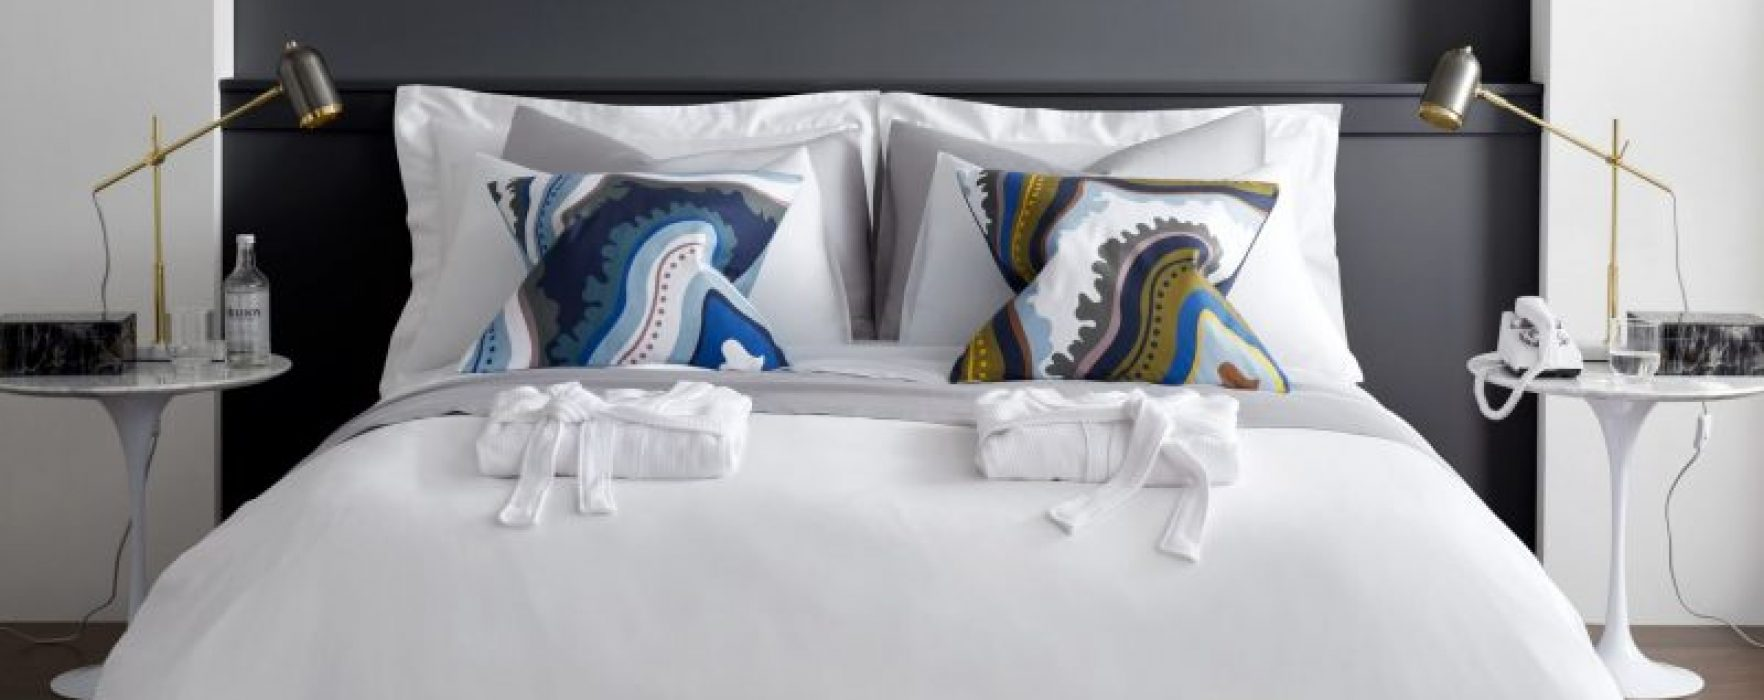 The Cushion with Bottle – Wilmslow entrepreneur makes plastic fantastic by recycling bottles into cushions